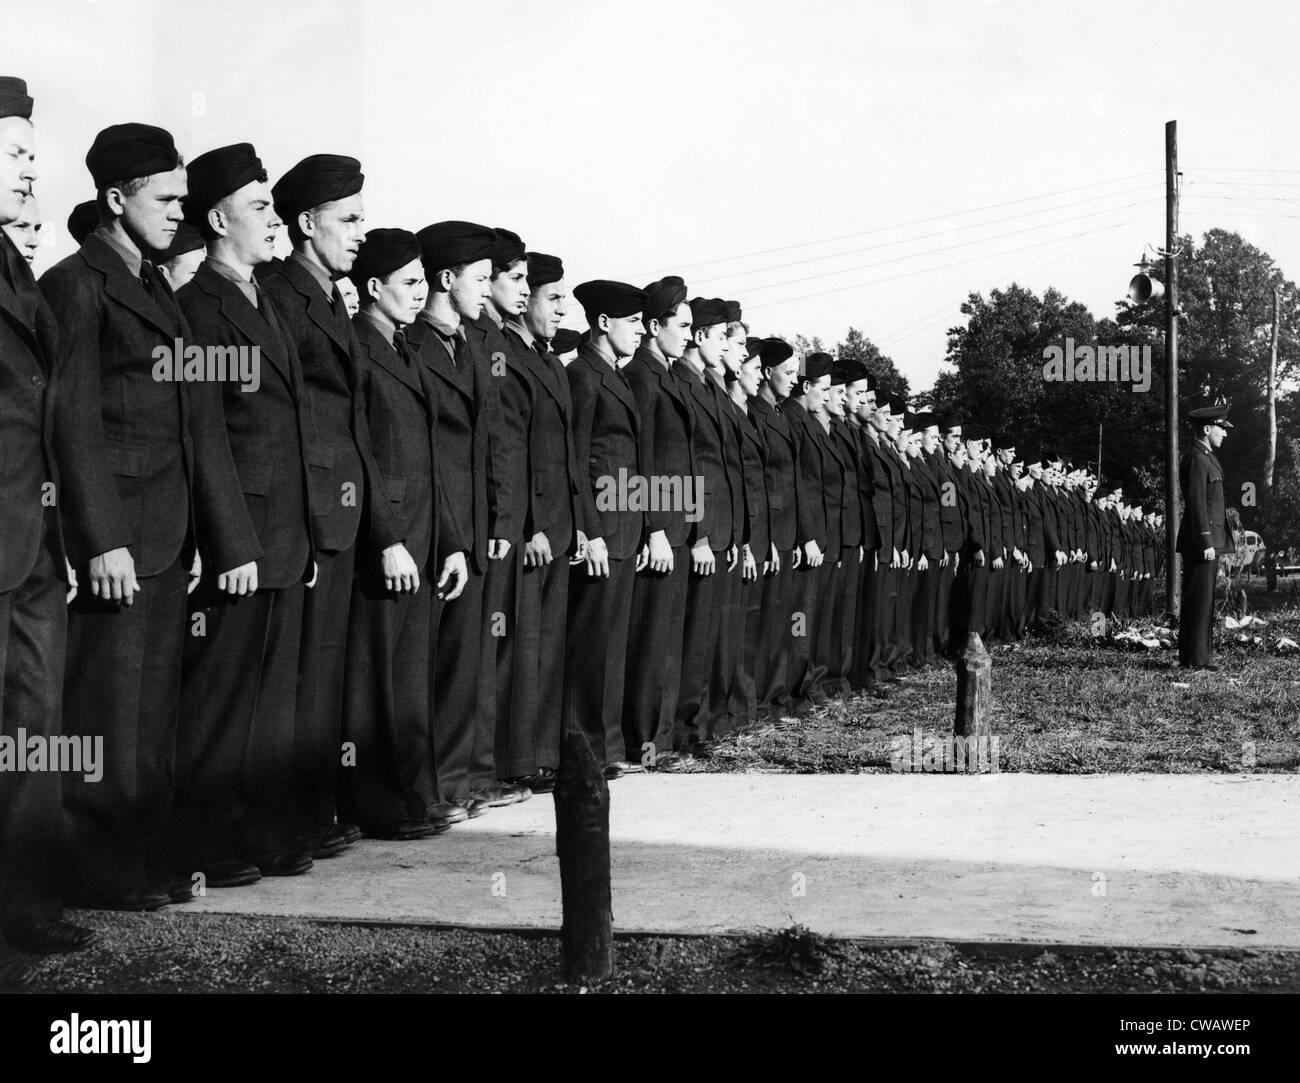 Memebrs of Company 356-SP6 of the Civilian Conservation Corps' Camp Montgomery display their new uniforms. Garett - Stock Image